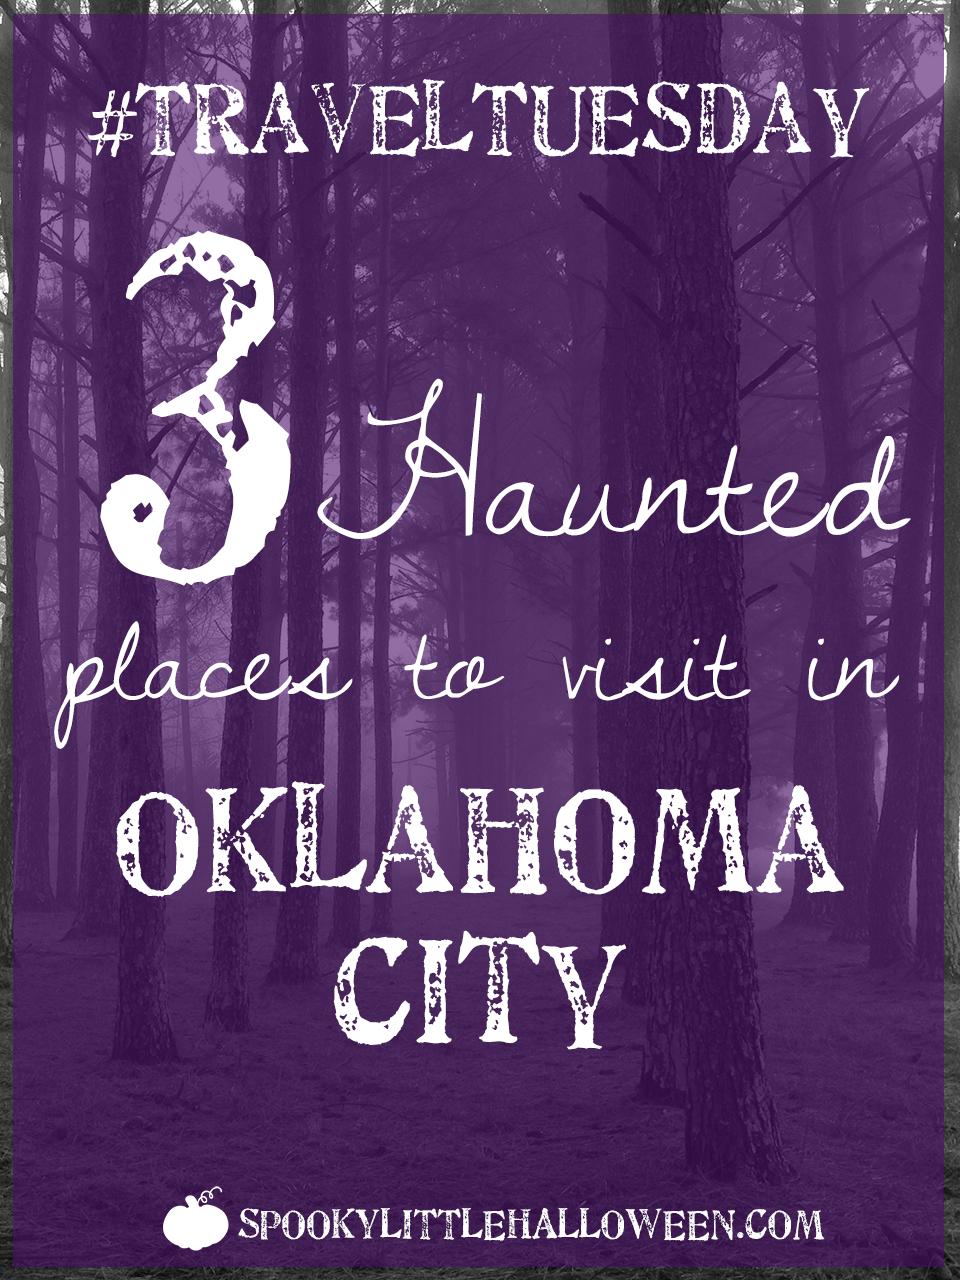 #TravelTuesday: 3 haunted places to visit in Oklahoma City - My haunted travel series continues this #TravelTuesday with a trip to the heartland - Oklahoma City! Here's three haunted places to visit. | spookylittlehalloween.com